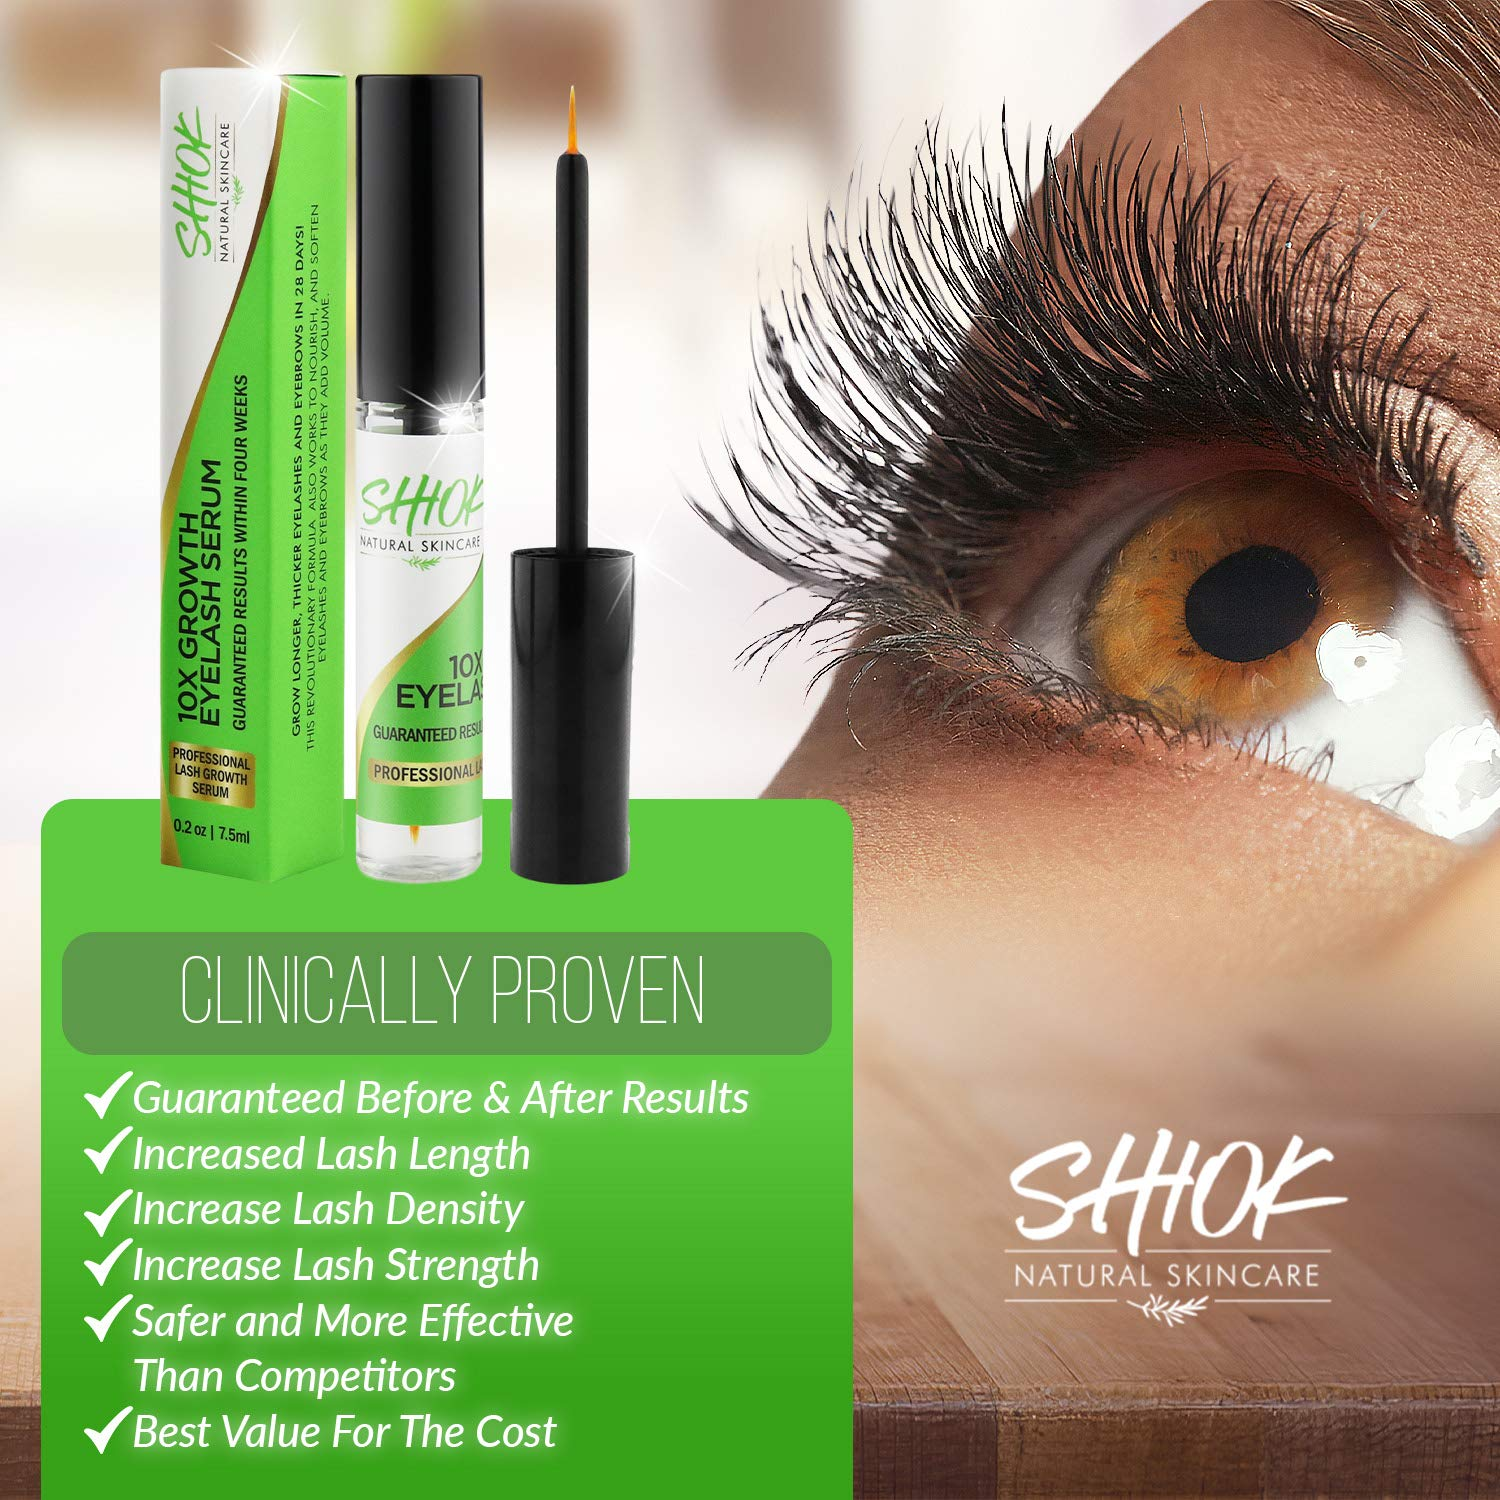 438cc5a761d Amazon.com: Shiok 10X Growth Eyelash Serum- Clinically Proven Eyelash Growth  Enhancer and Brow Serum to Dramatically Boost Lashes and Eyebrows.